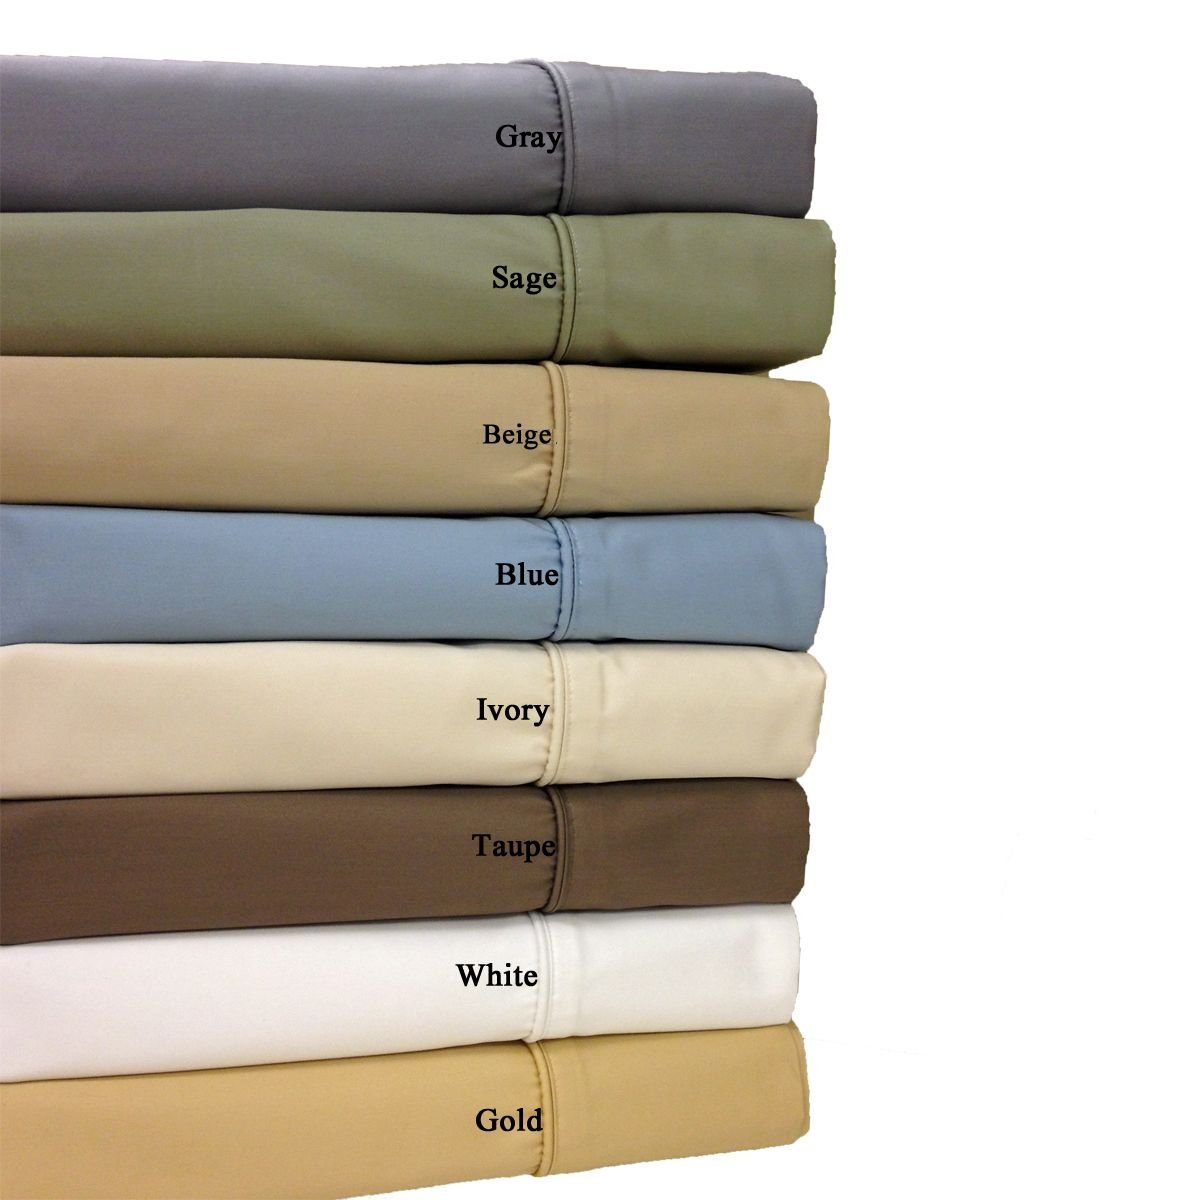 Top-Split-King: Adjustable King Size White Cotton-Blend Wrinkle-Free Sheets 650-Thread-Count Solid Sheet Set